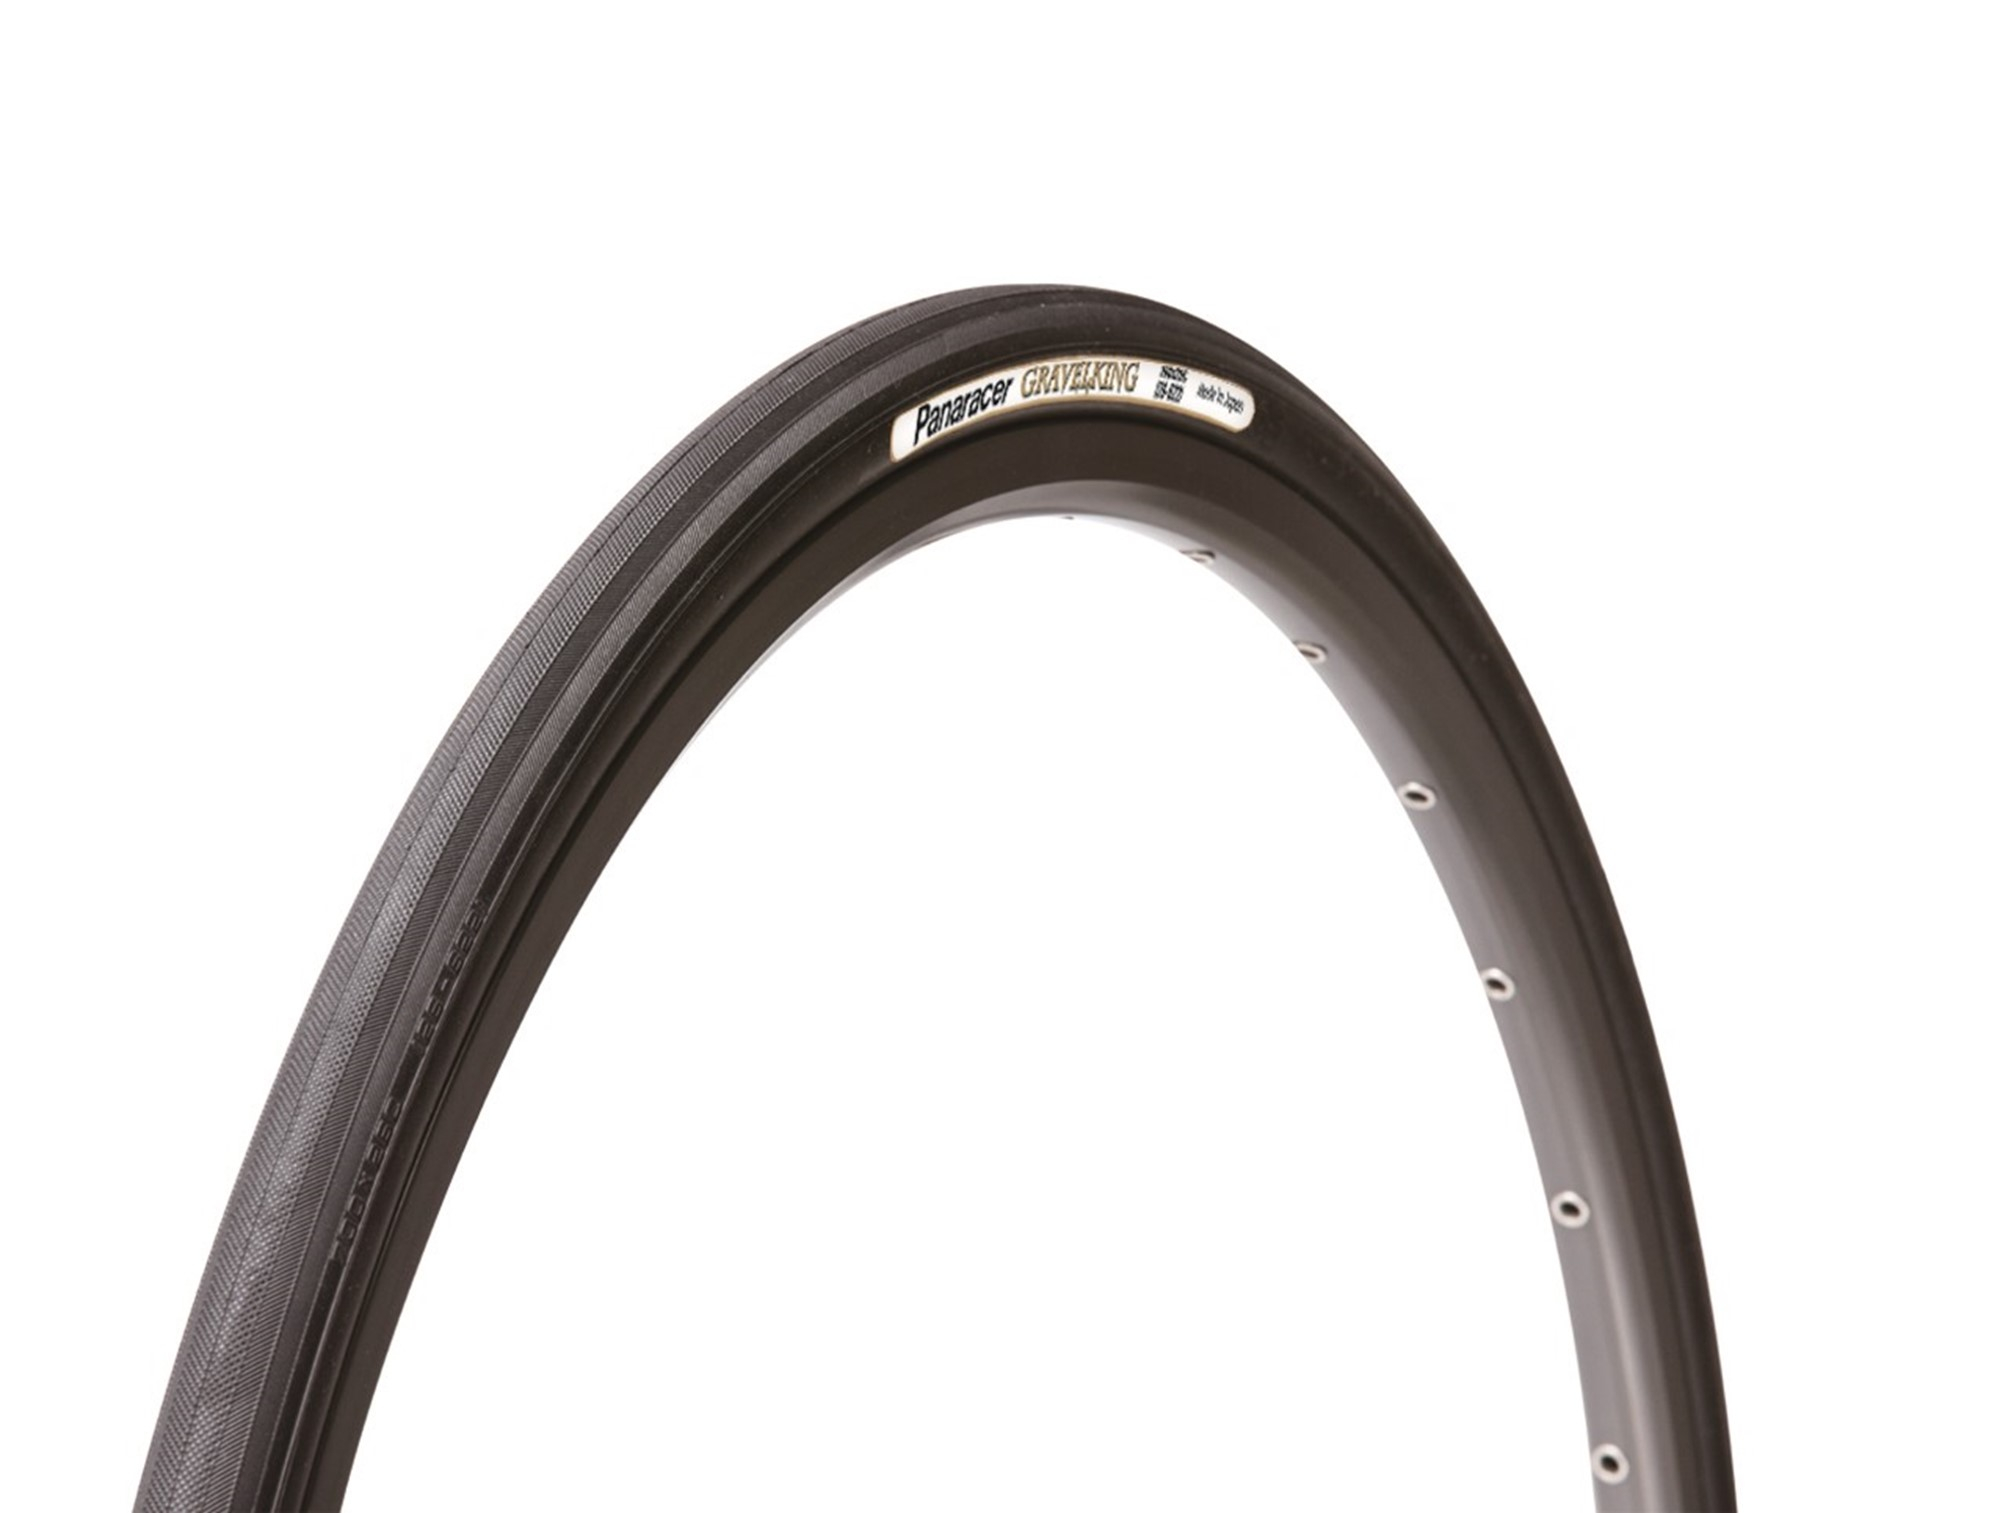 Panaracer GravelKing 700Cx26 sort - 3410961 | Dæk